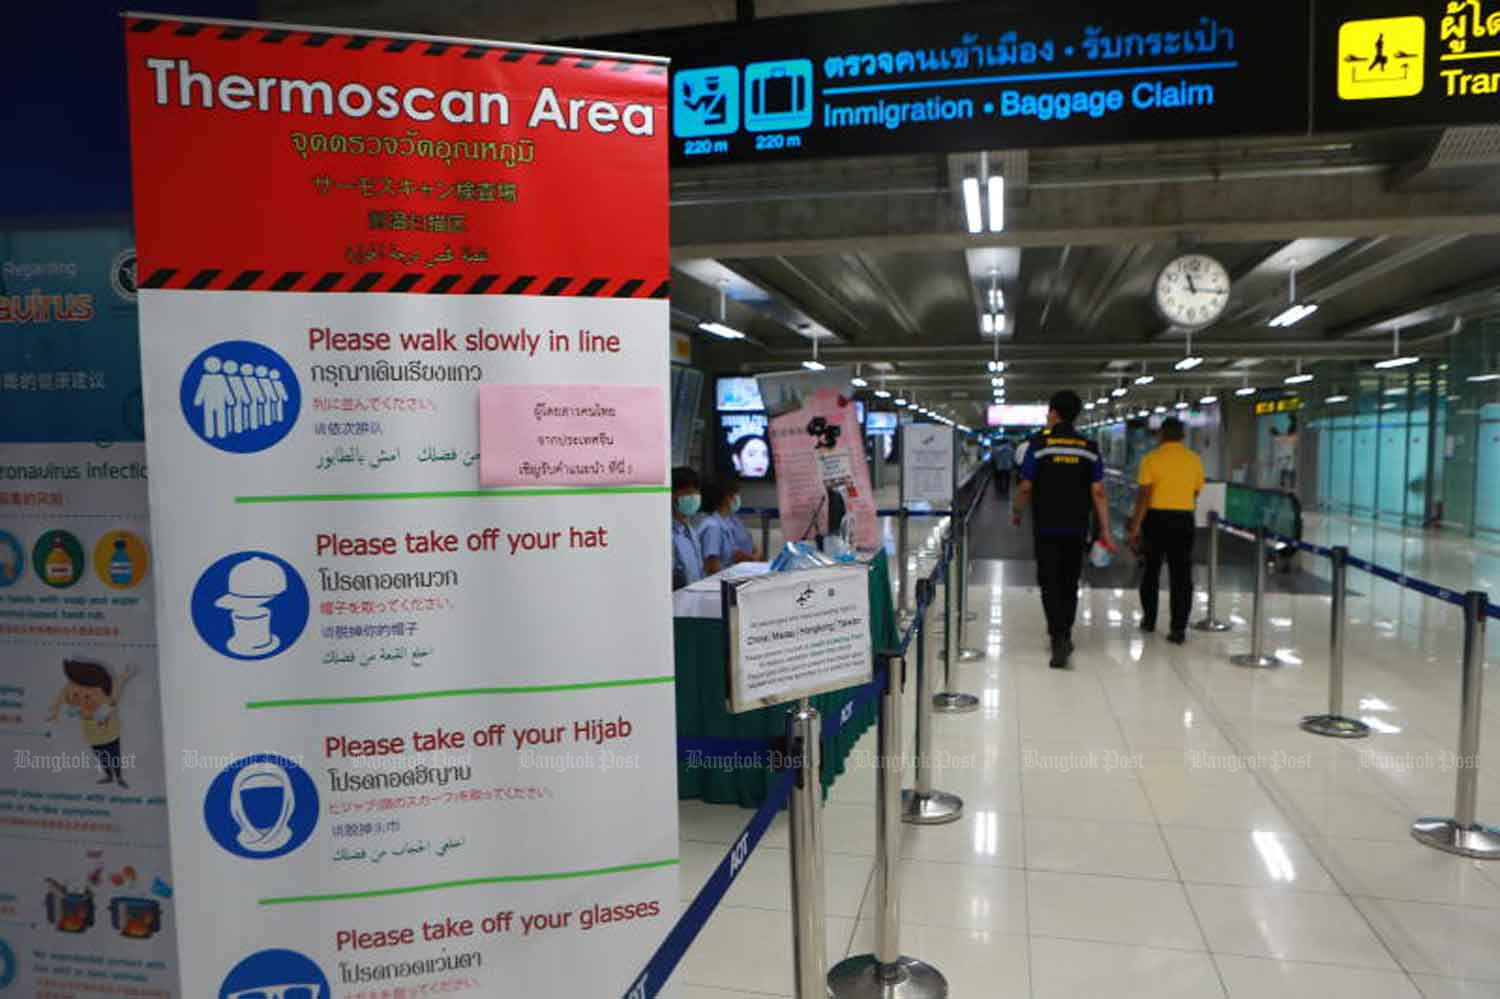 The arrival zone of Suvarnabhumi airport. Authorities says foreign diplomats must wait for a negative Covid-19 test result before leaving the airport, and stricter measures are in the pipeline. (Photo: Somchai Poomlard)